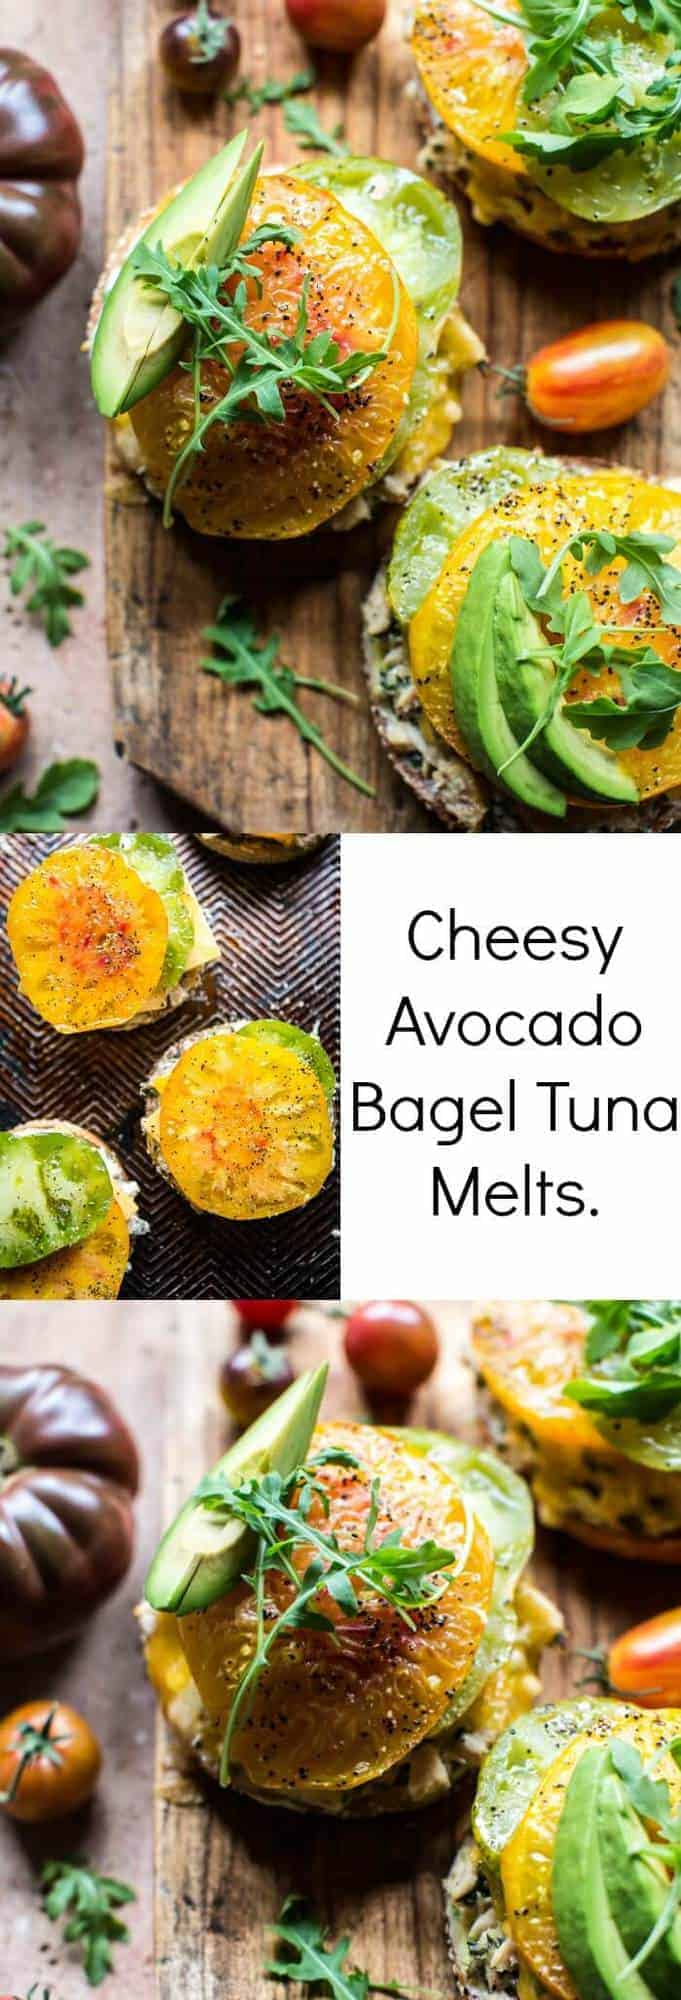 Cheesy Avocado Bagel Tuna Melts | halfbakedharvest.com @hbharvest